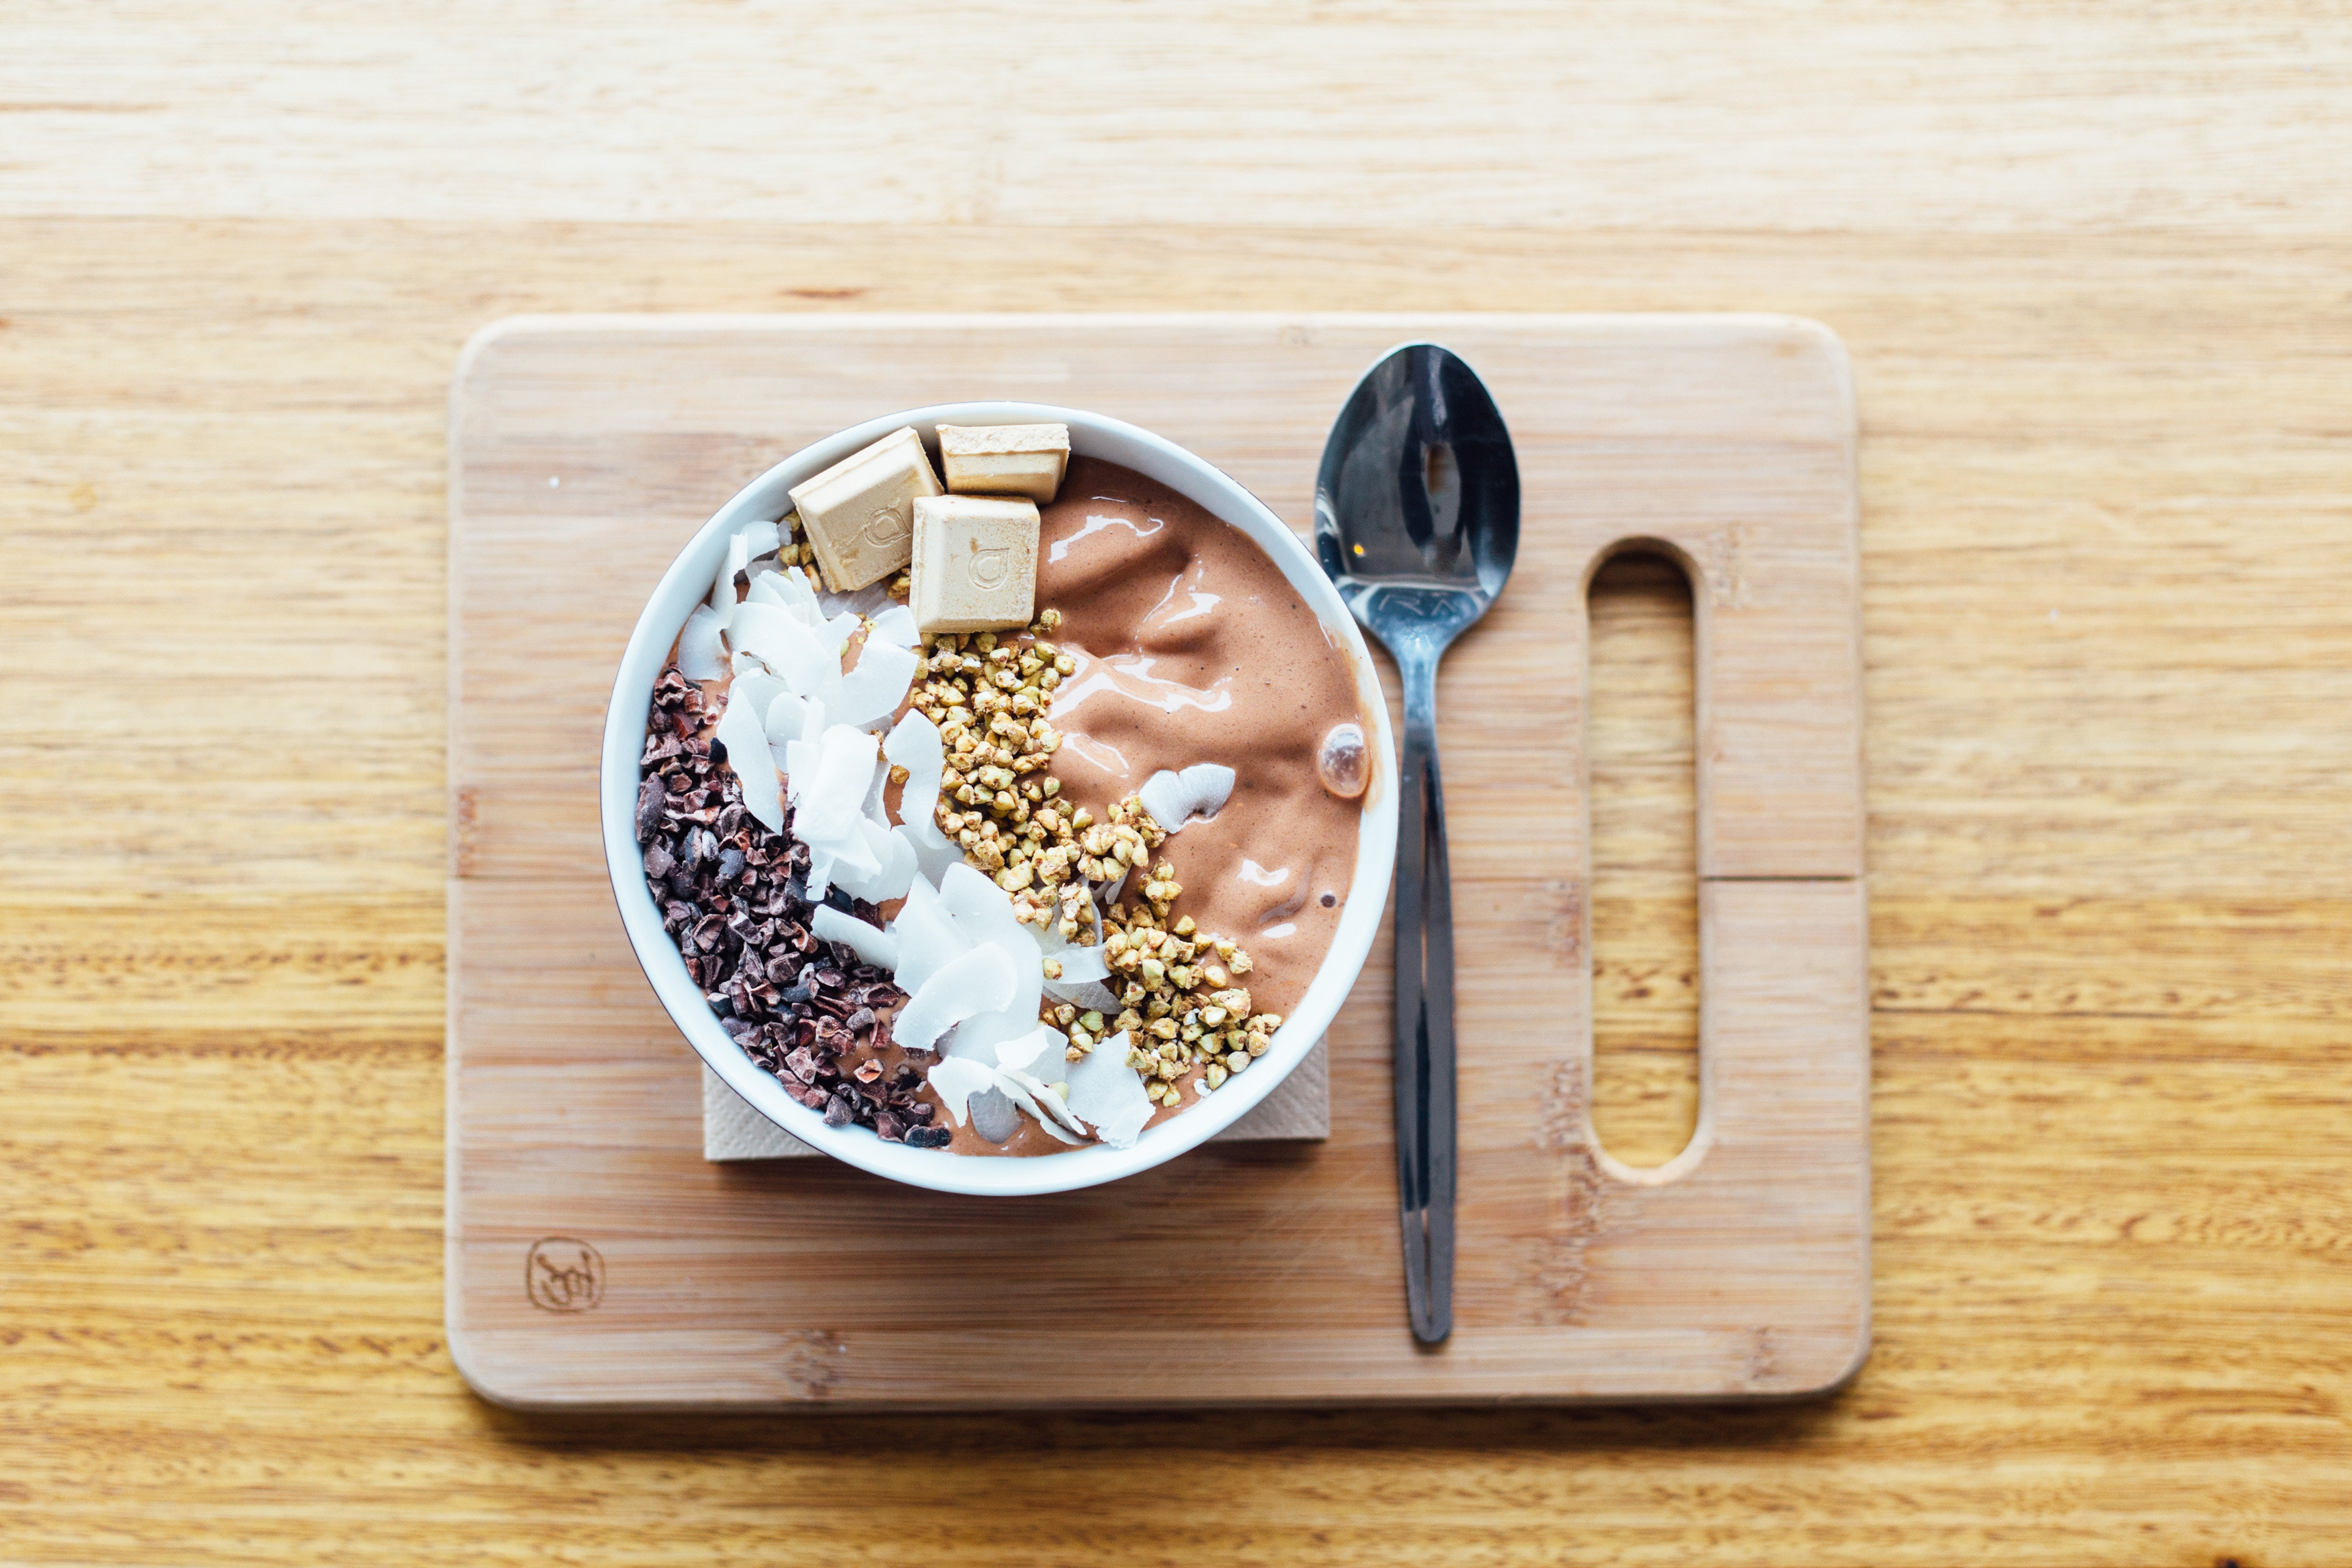 Smoothie Bowl Millennial Food Trend